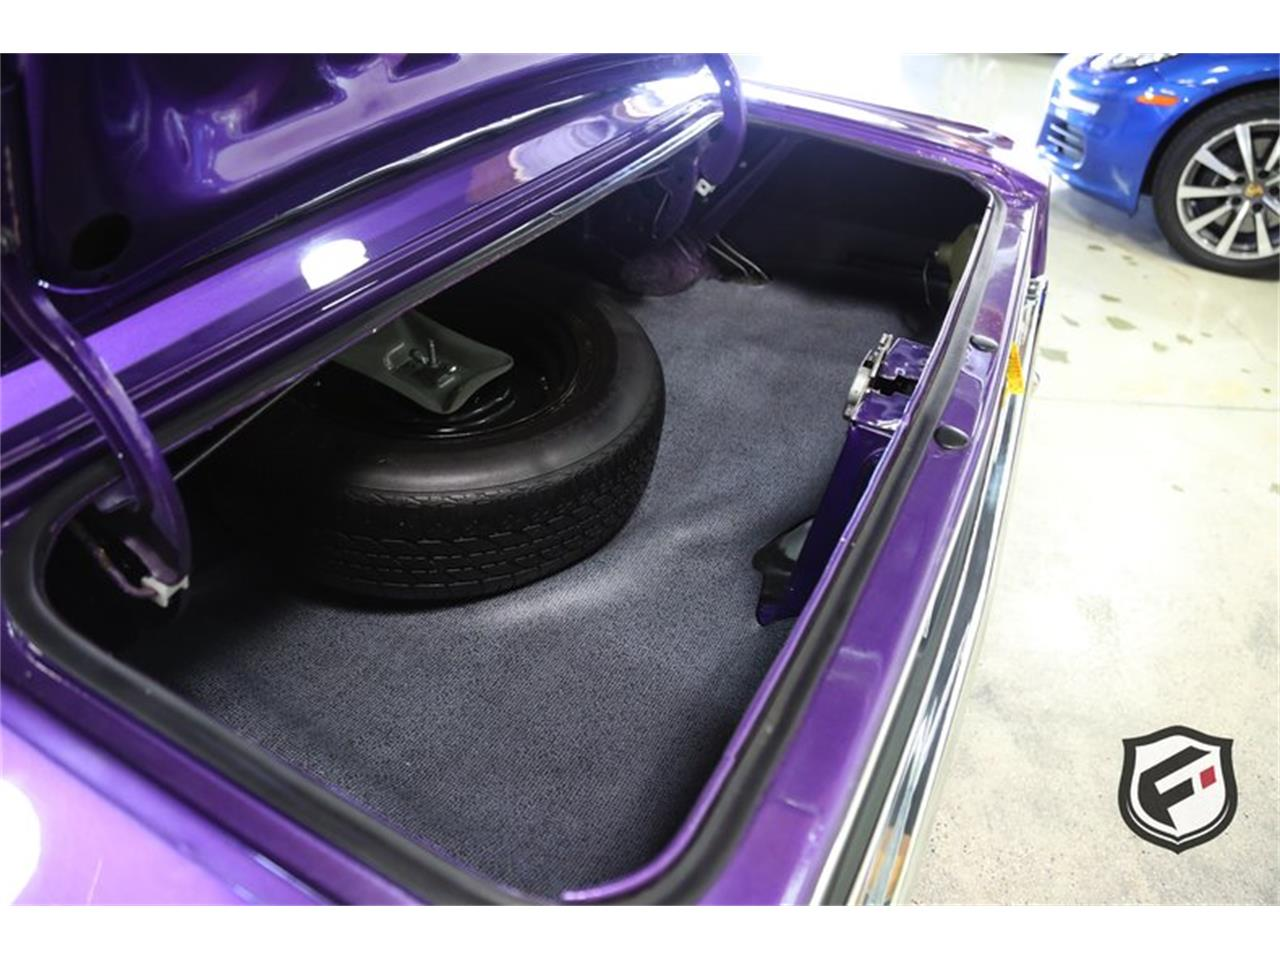 Large Picture of 1970 Hemi 'Cuda Convertible located in Chatsworth California - $99,900.00 - LFH0